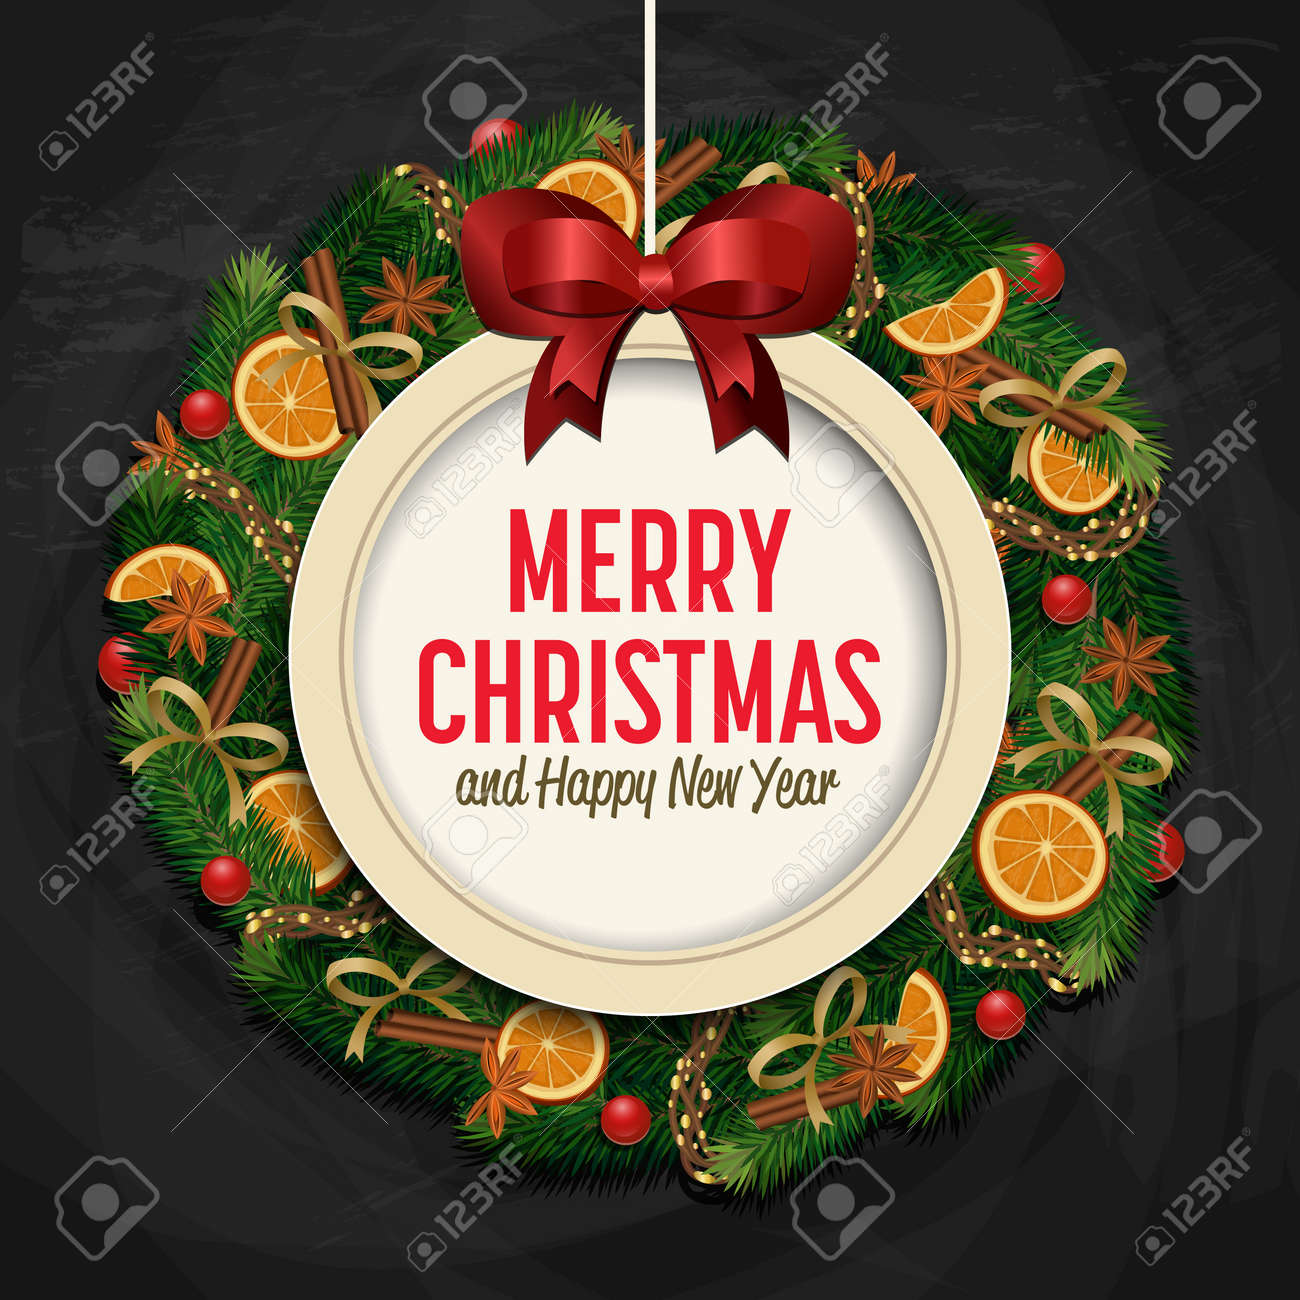 Merry christmas and happy new year greetings vector illustration merry christmas and happy new year greetings vector illustration xmas ball with bow and greeting m4hsunfo